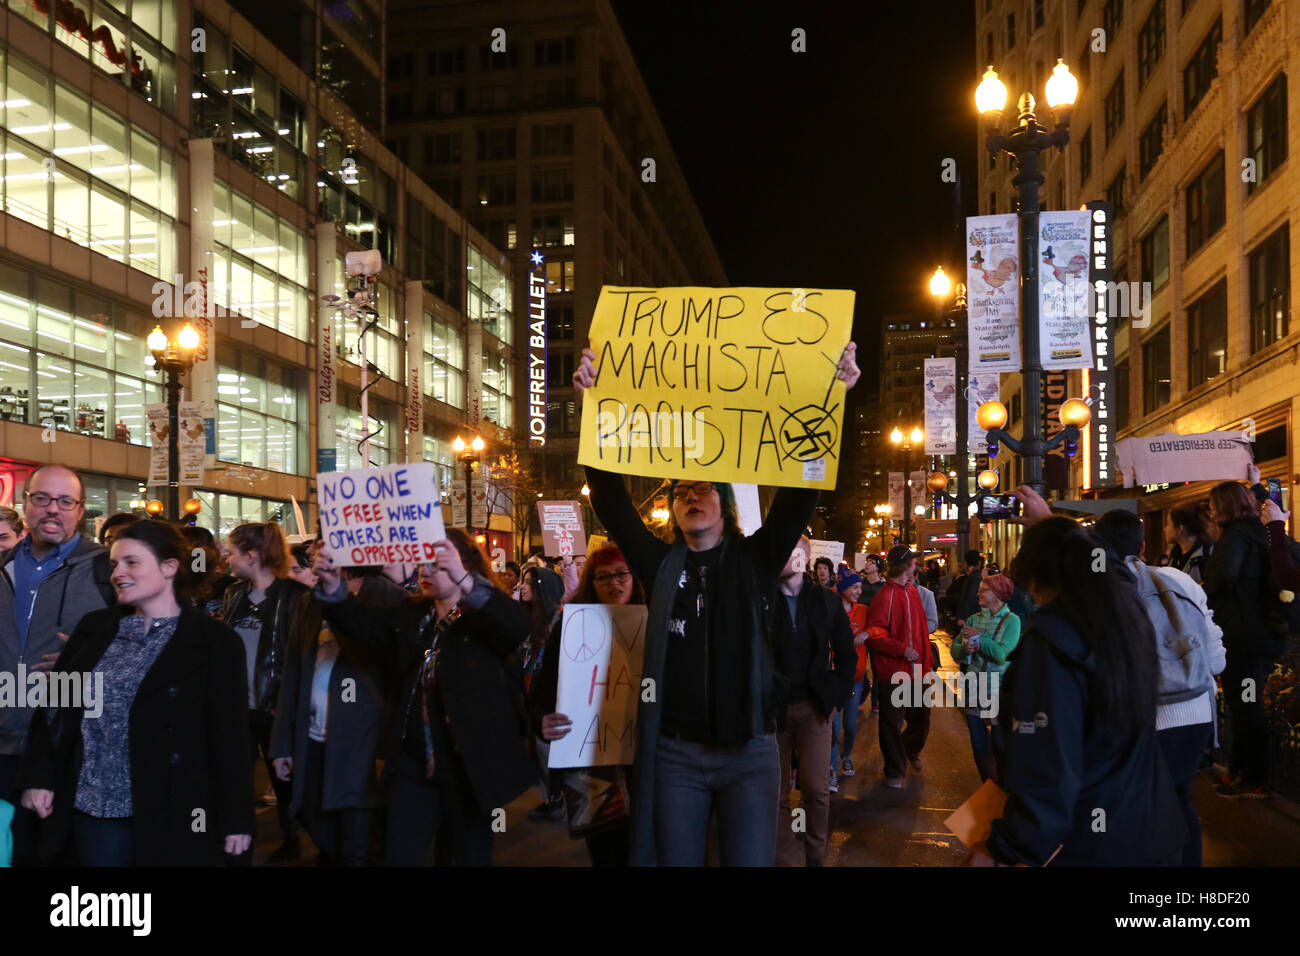 Chicago, Illinois, USA. 9th November, 2016. Demonstrators protest against President Elect Donald Trump on State - Stock Image